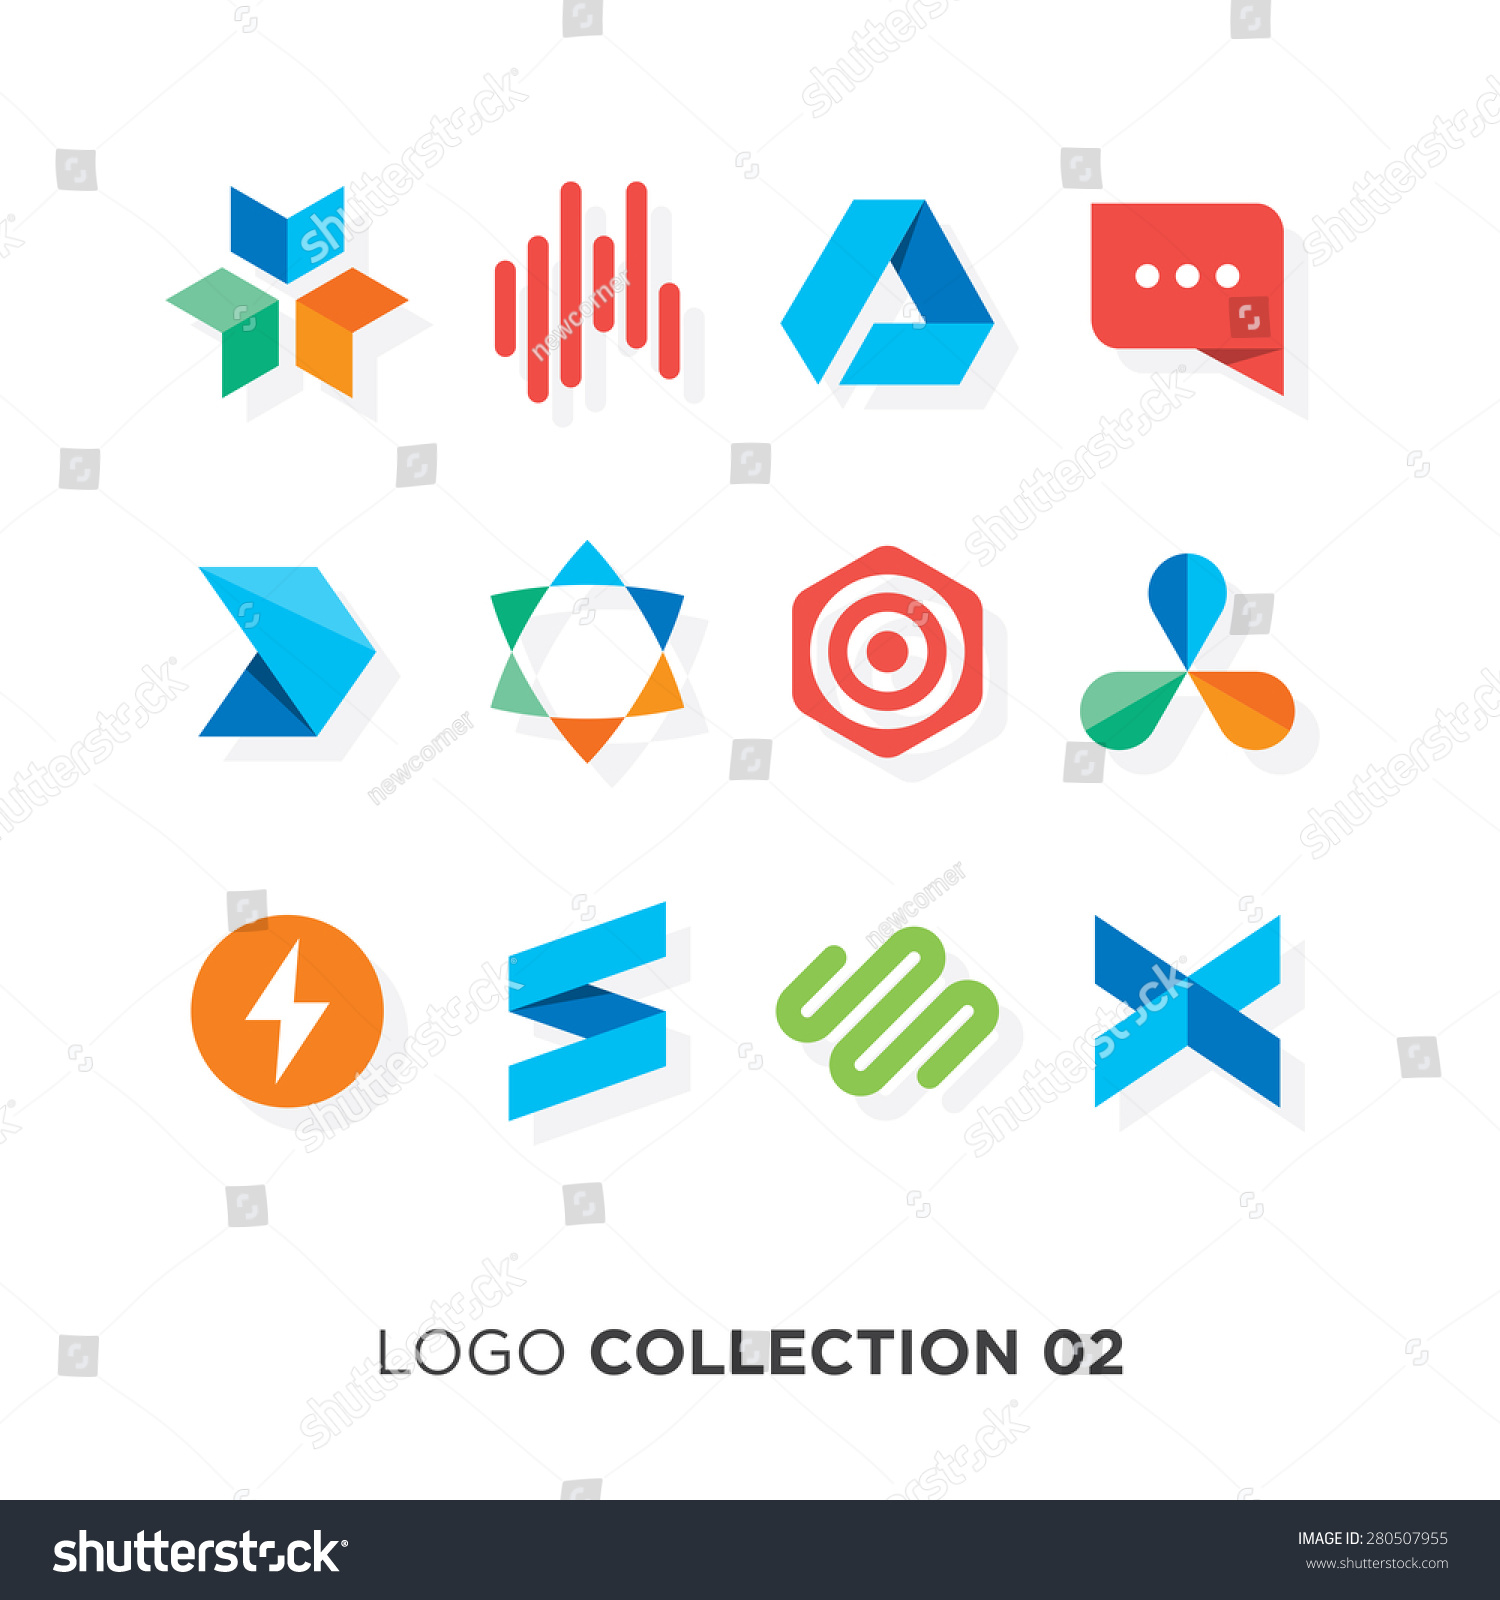 Vector graphic design business logo - Logo Collection 02 Vector Graphic Design Elements For Your Company Logo